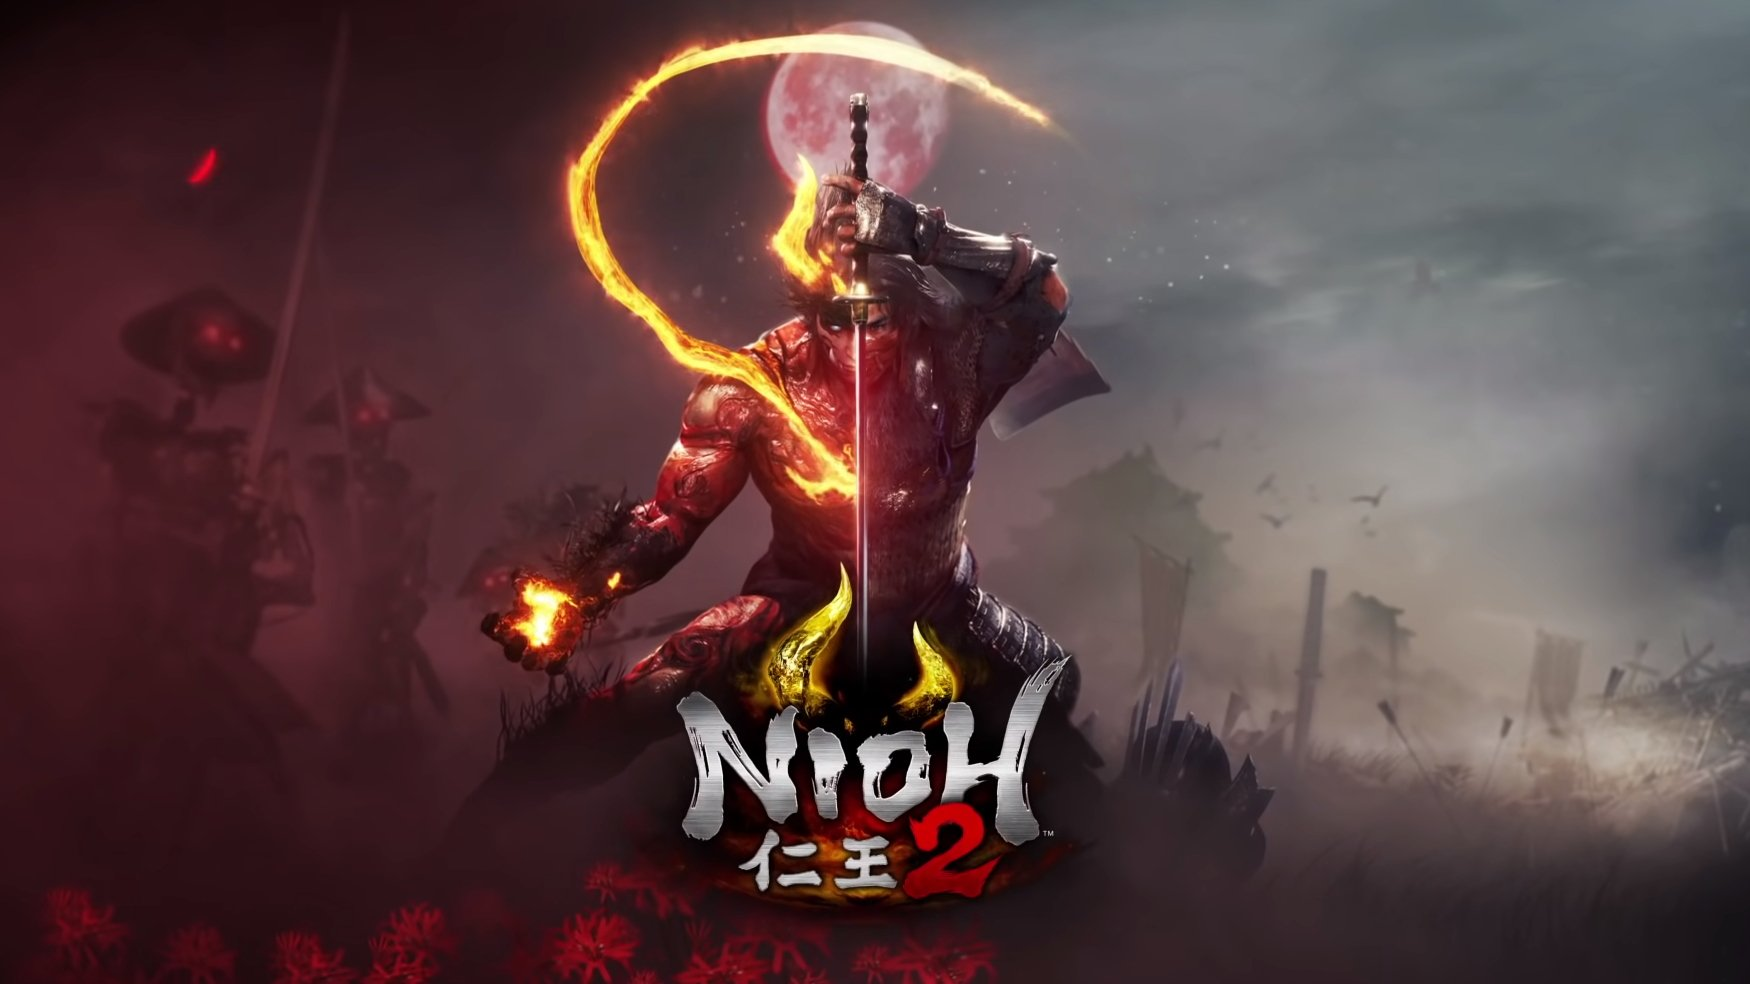 All Smithing Texts in Nioh 2 where to find them